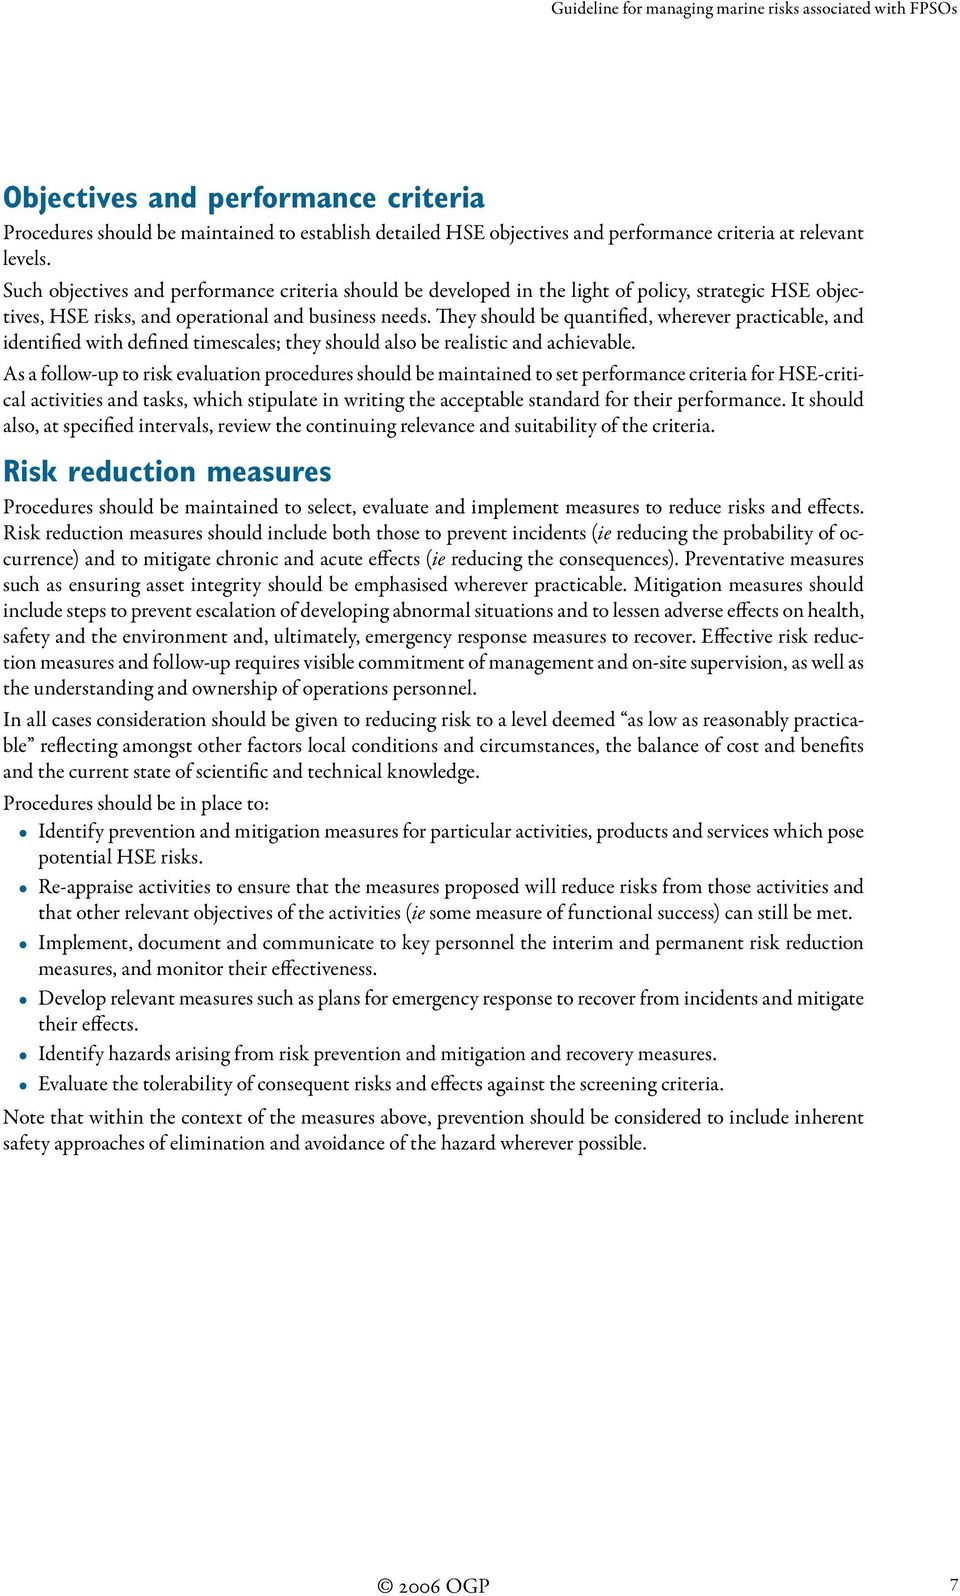 Guideline for managing marine risks associated with FPSOs - PDF